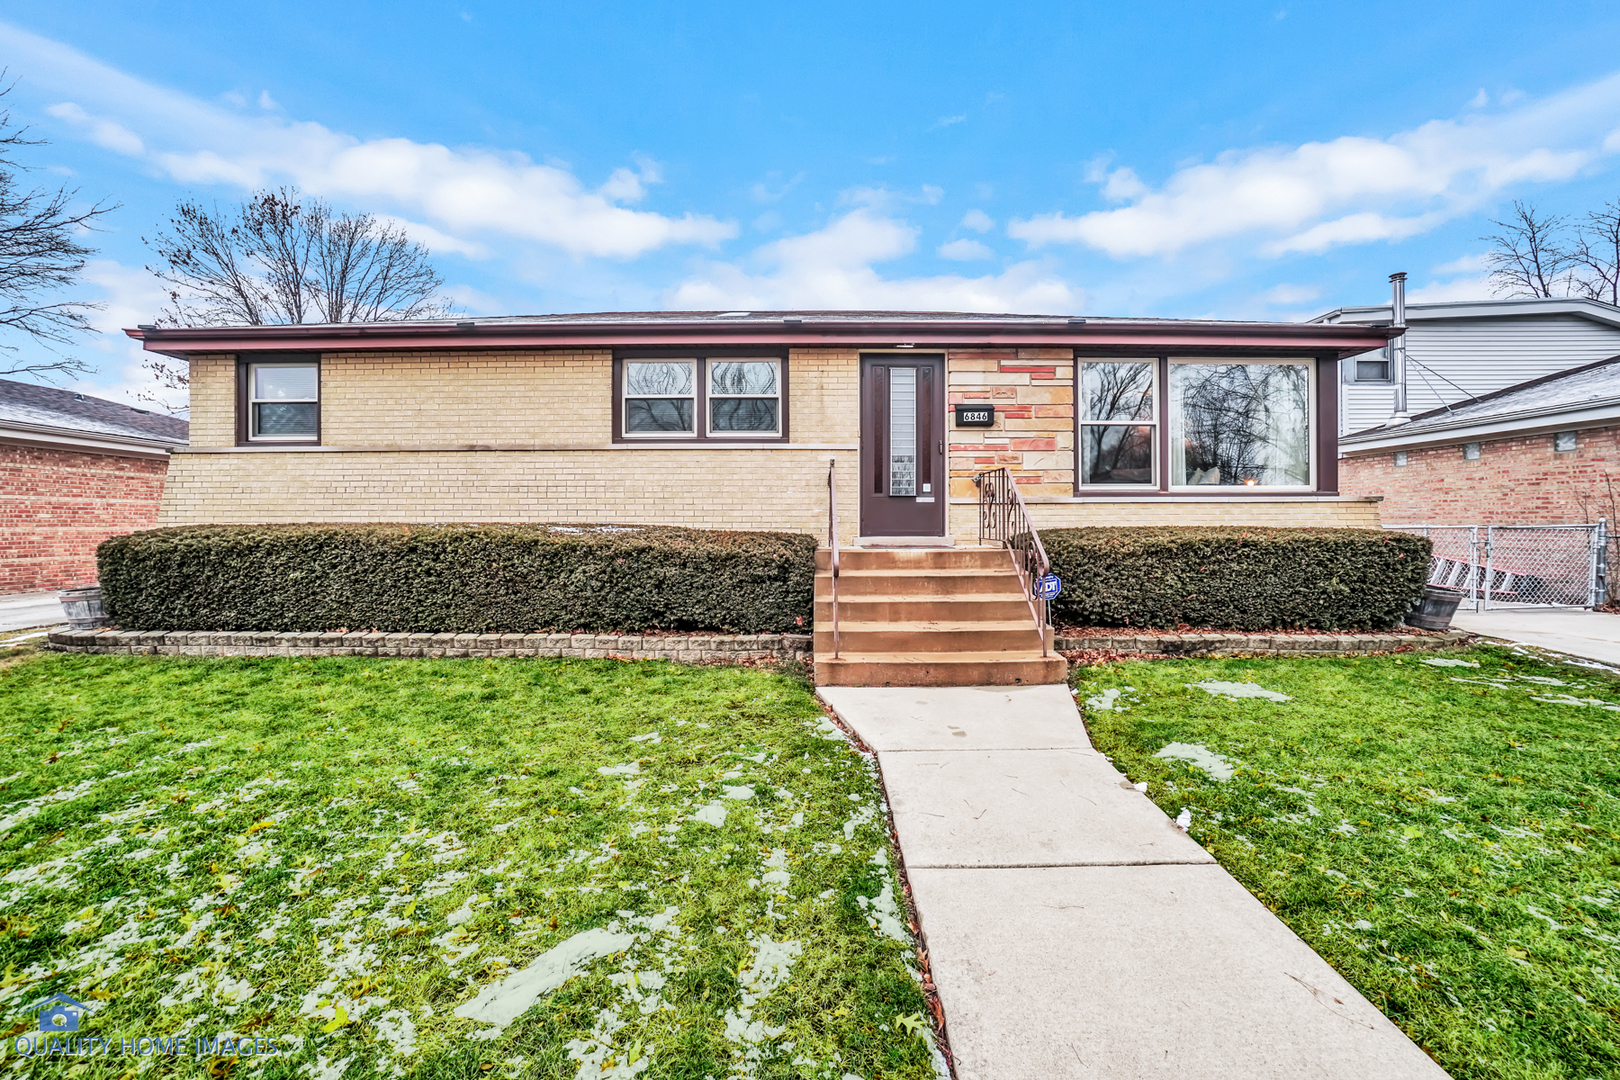 6846 176th Street, Tinley Park in Cook County, IL 60477 Home for Sale